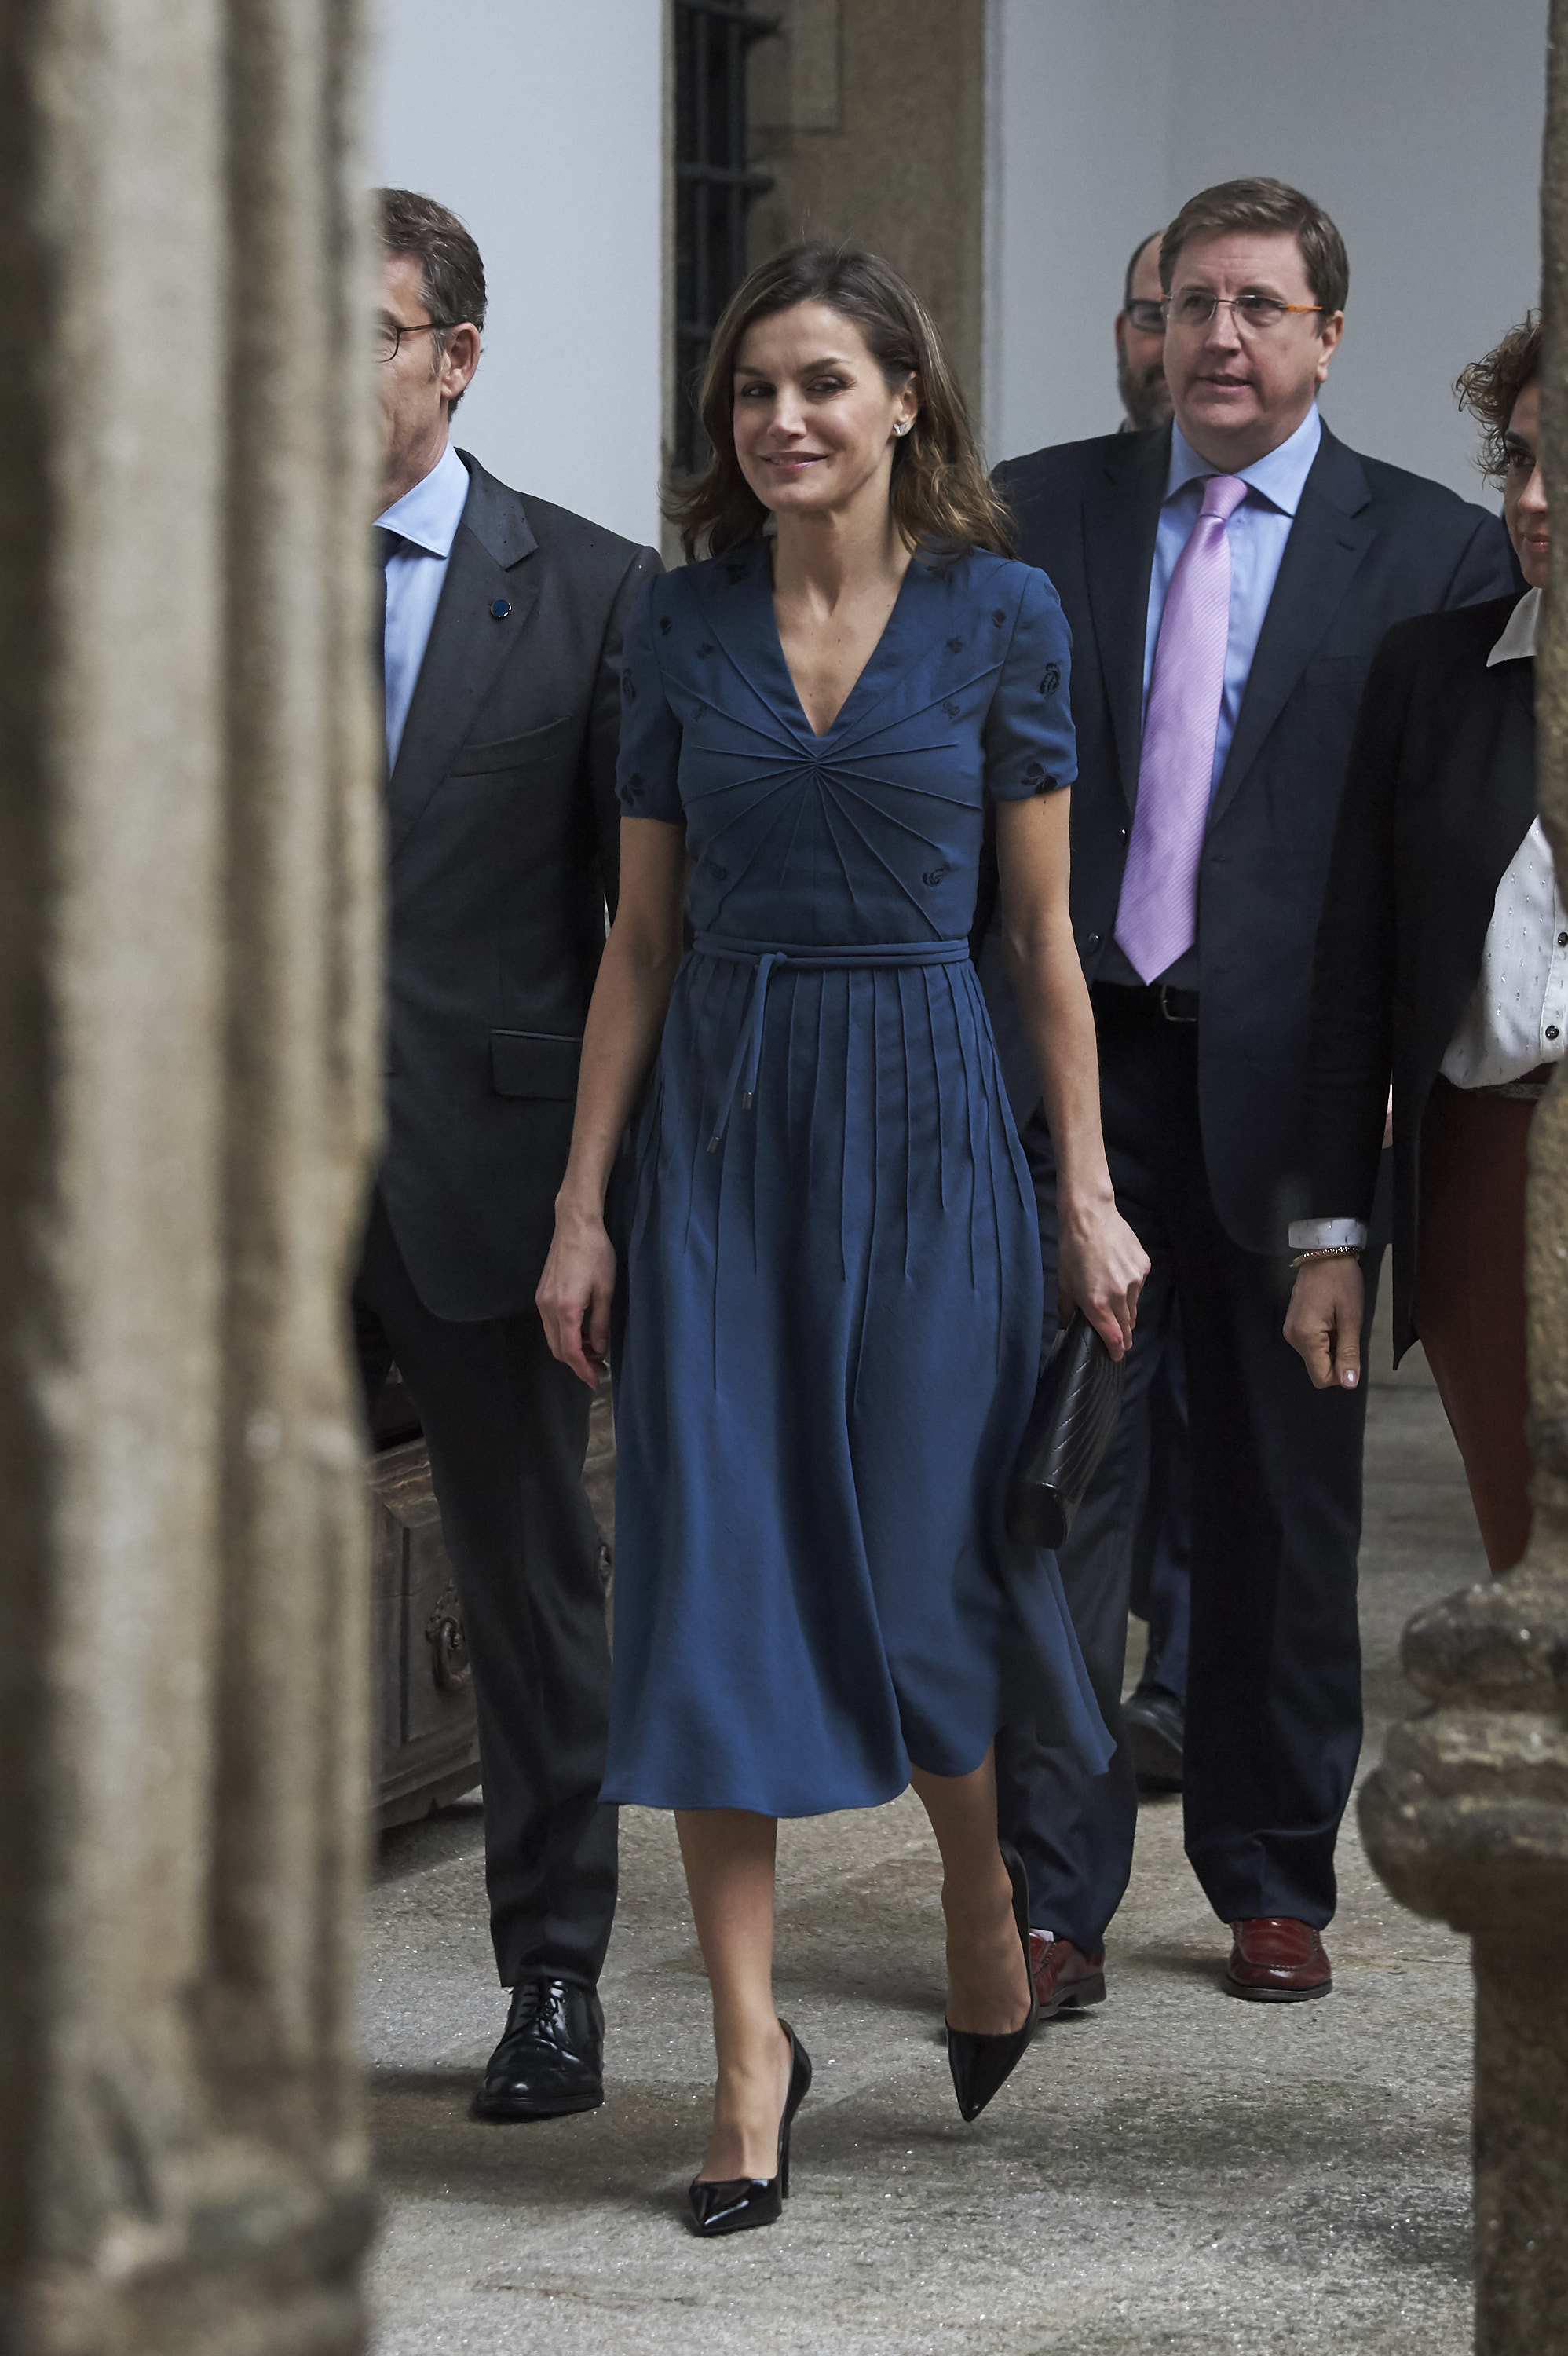 SANTIAGO DE COMPOSTELA, SPAIN - MARCH 02: Queen Letizia of Spain attends 'Digitalizadas' presentation at the Reyes Catolicos Hotel on March 2, 2018 in Santiago de Compostela, Spain. (Photo by Carlos R. Alvarez/WireImage)